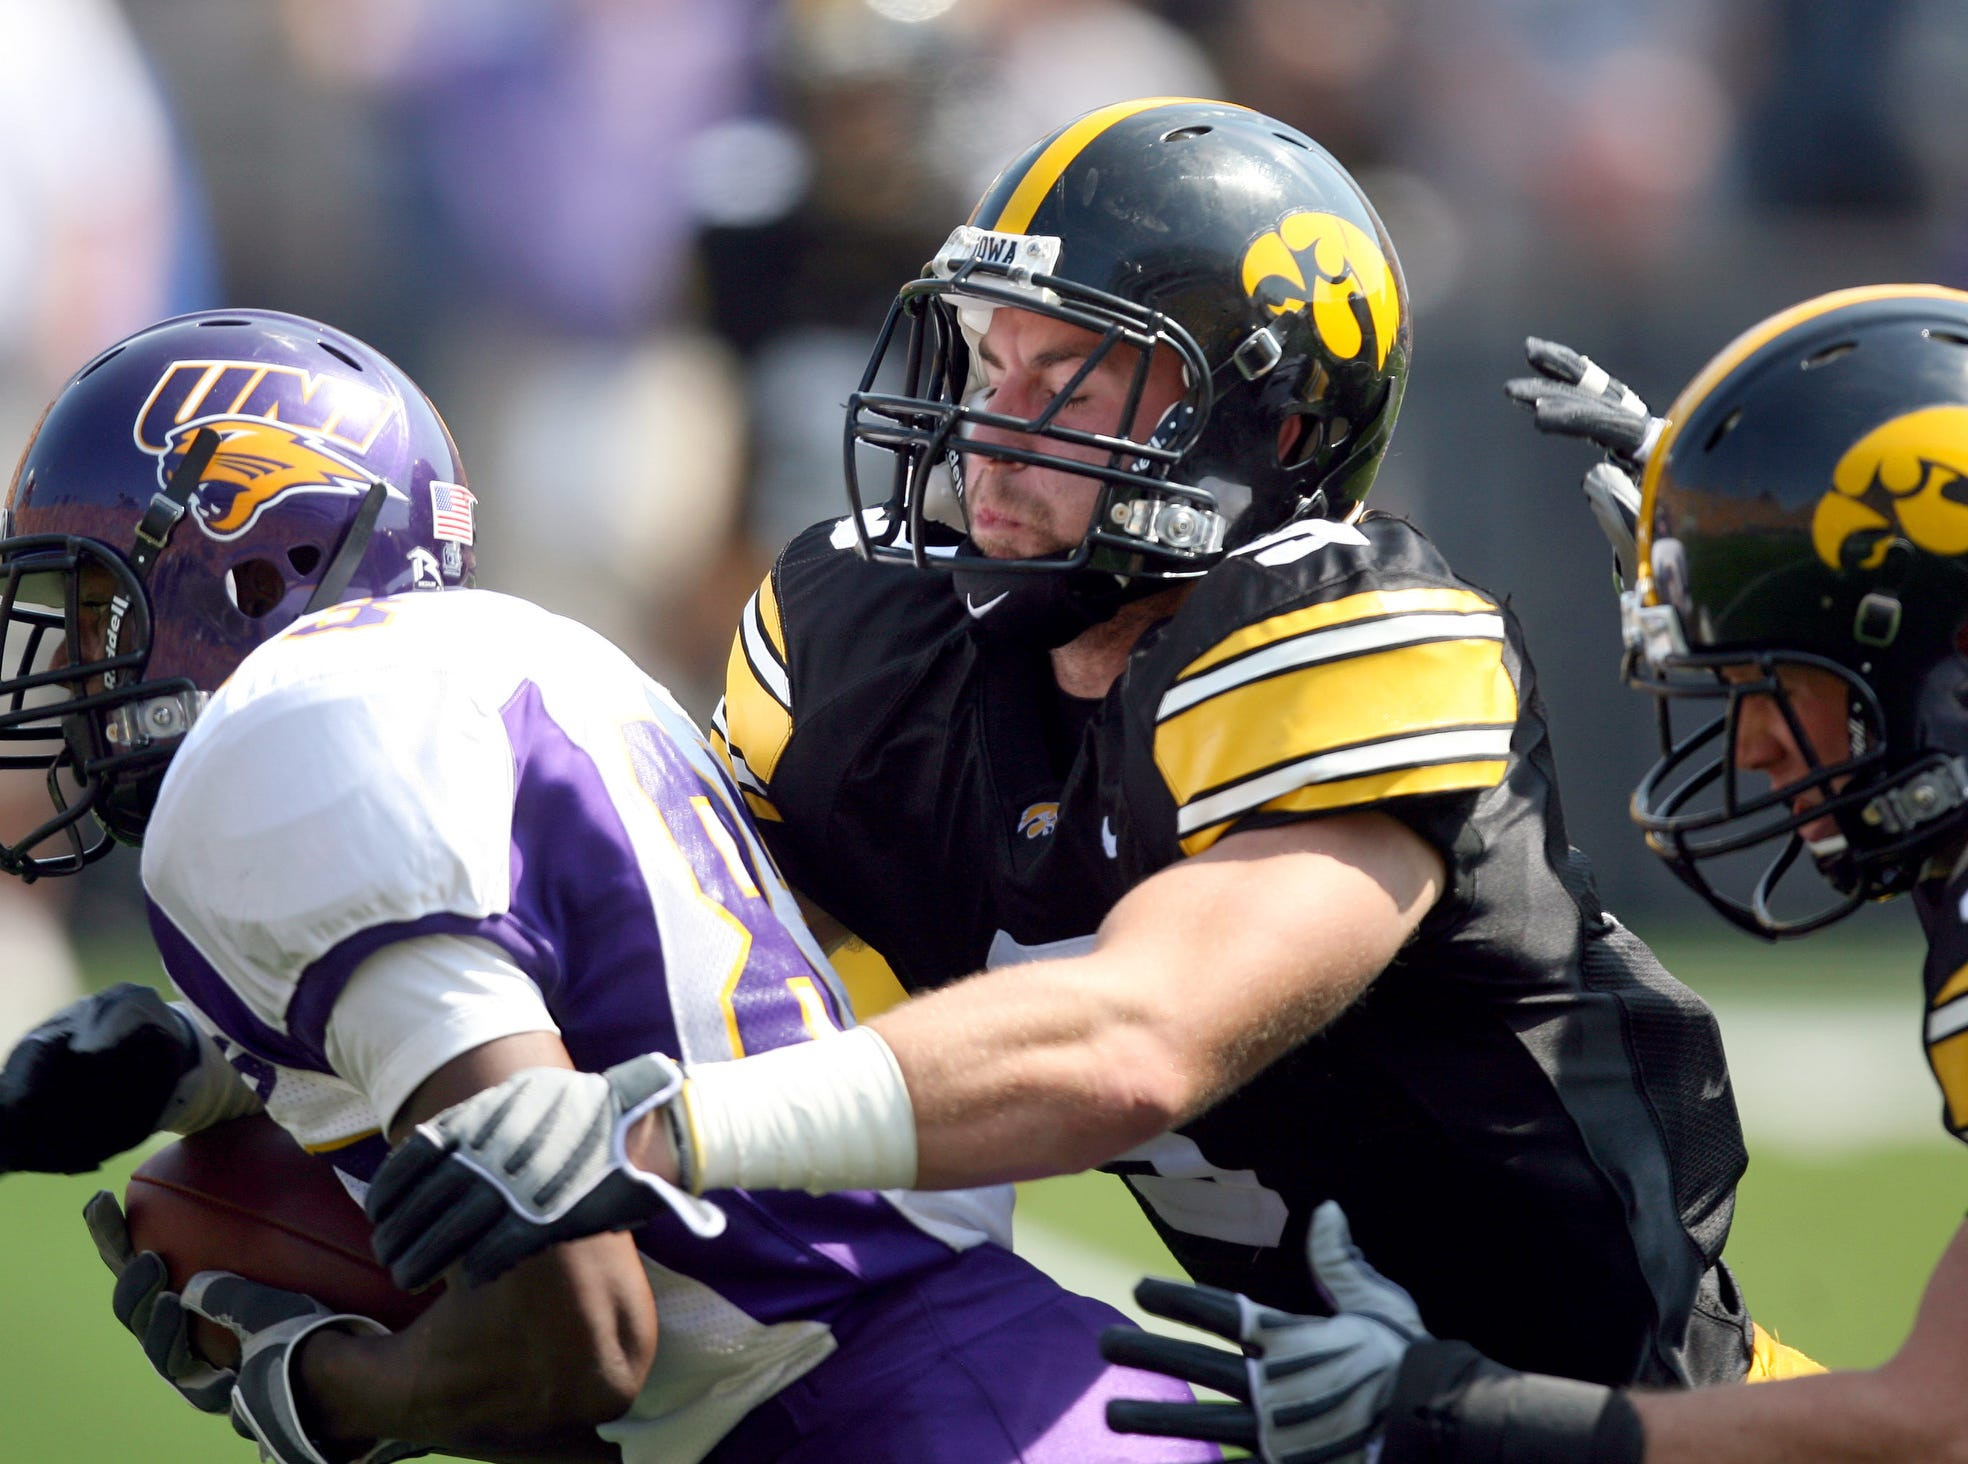 Iowa defensive backs Tyler Sash (9) and Brett Greenwood (30) tackle Northern Iowa wide receiver Jarred Herring after Herring pulled in a pass Sept. 5, 2009 in Iowa City.